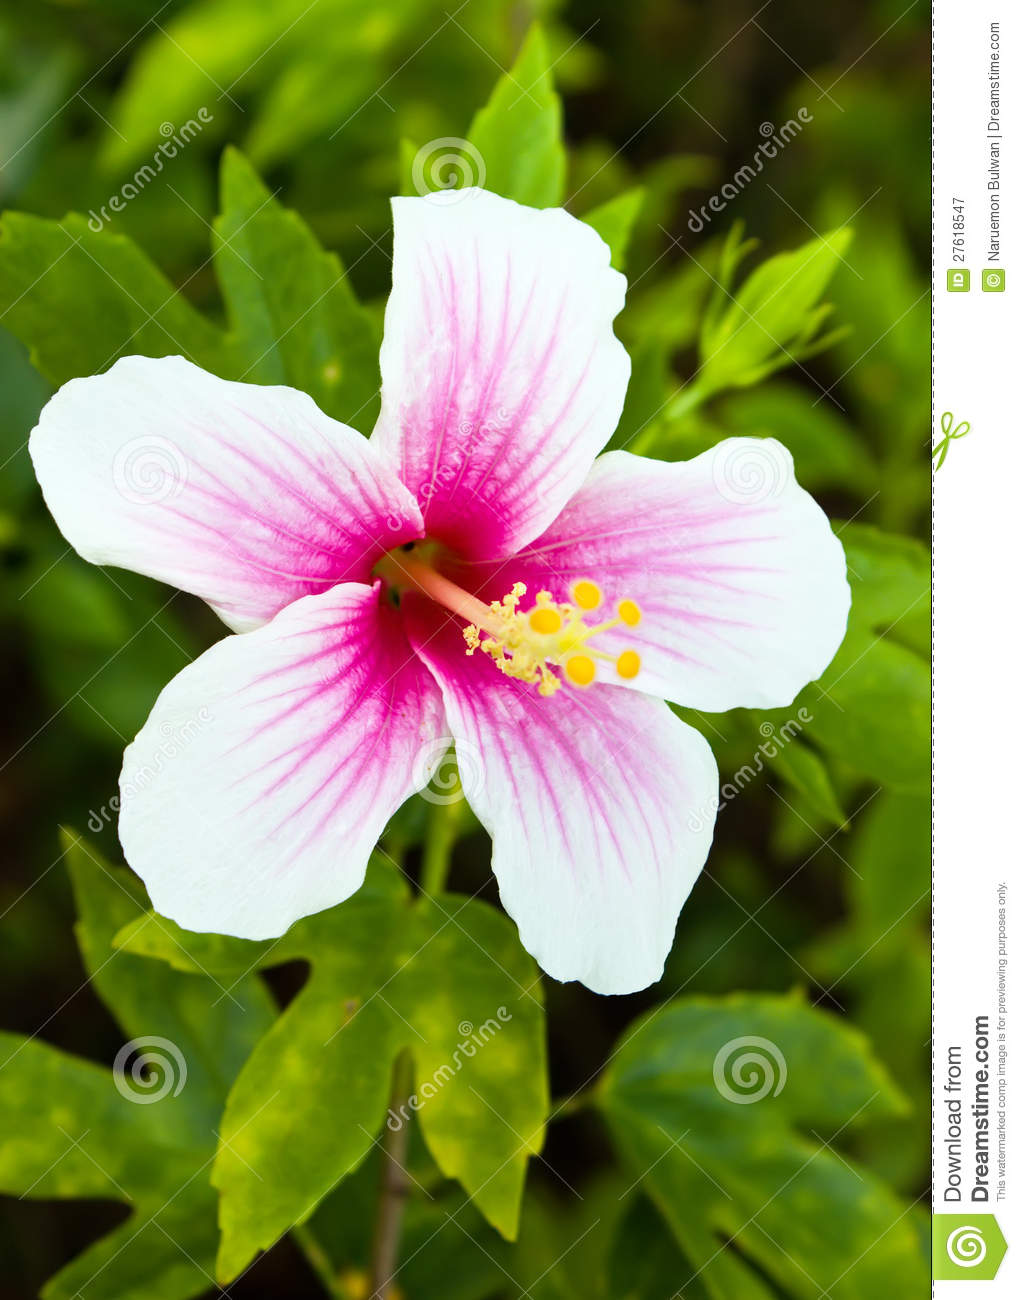 Pink and white hibiscus flower stock image image of object green pink and white hibiscus flower mightylinksfo Choice Image